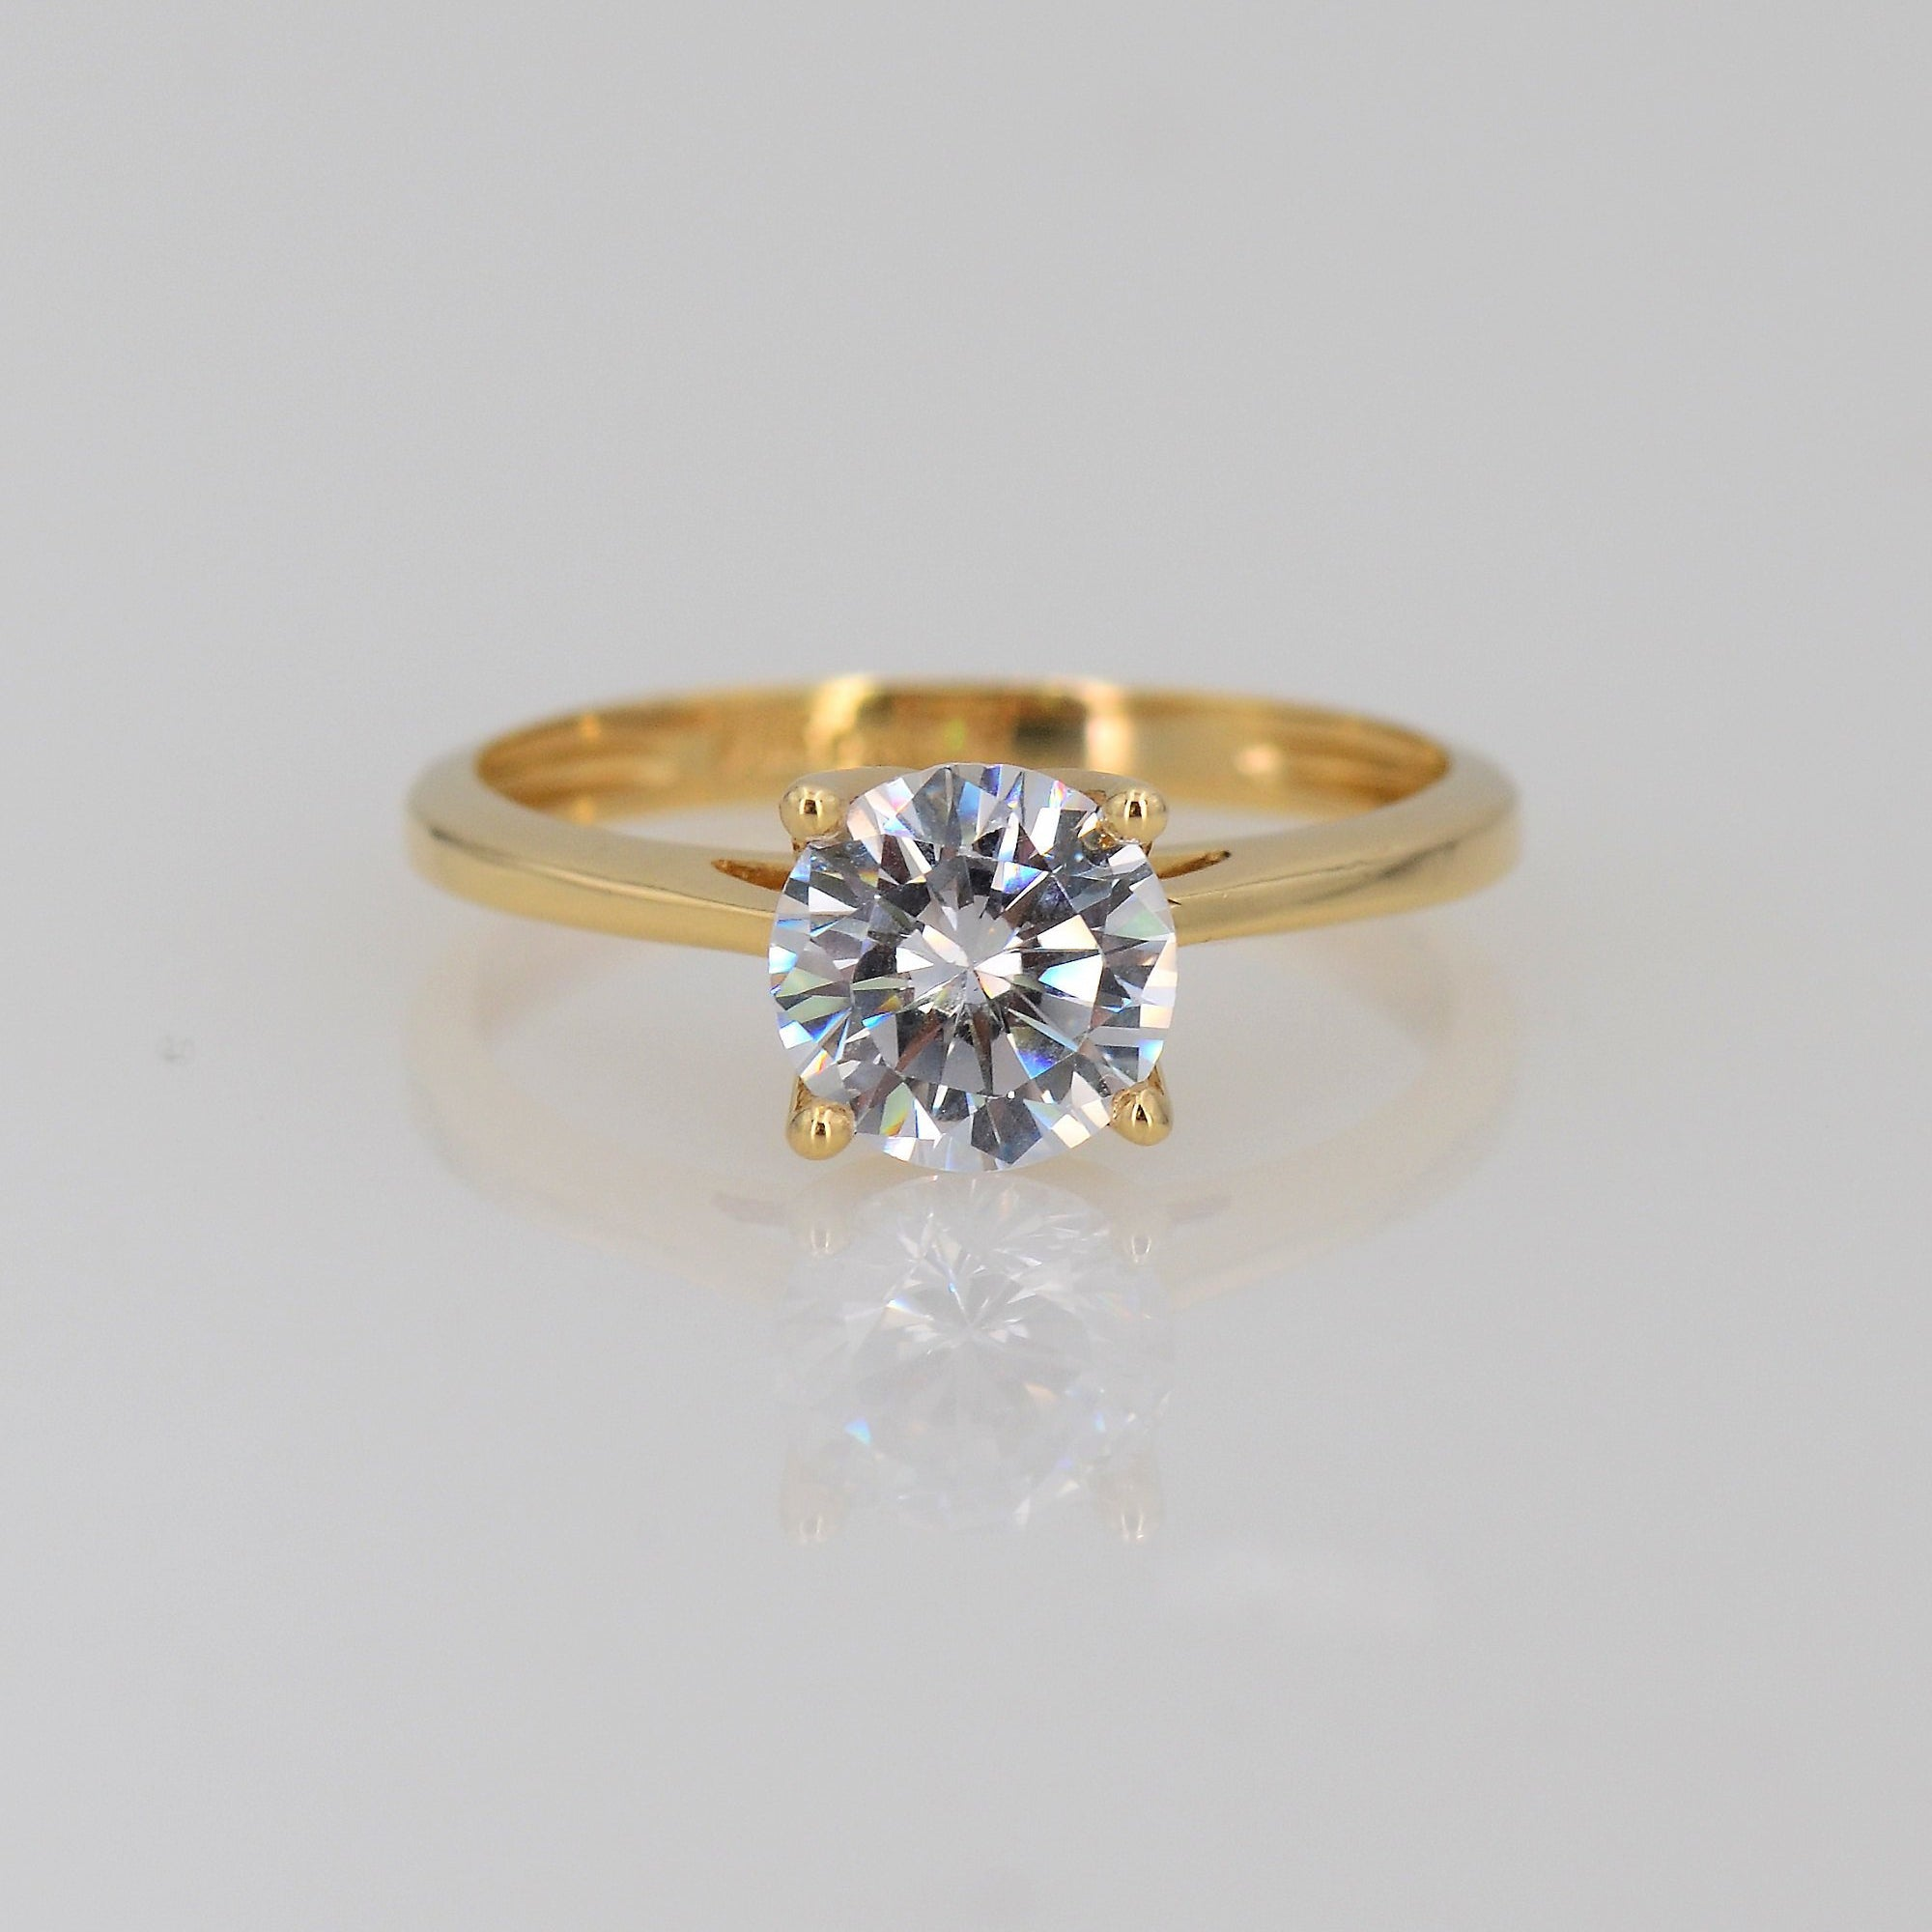 Solitaire Moissanite Ring, 7mm Round Moissanite Engagement Ring